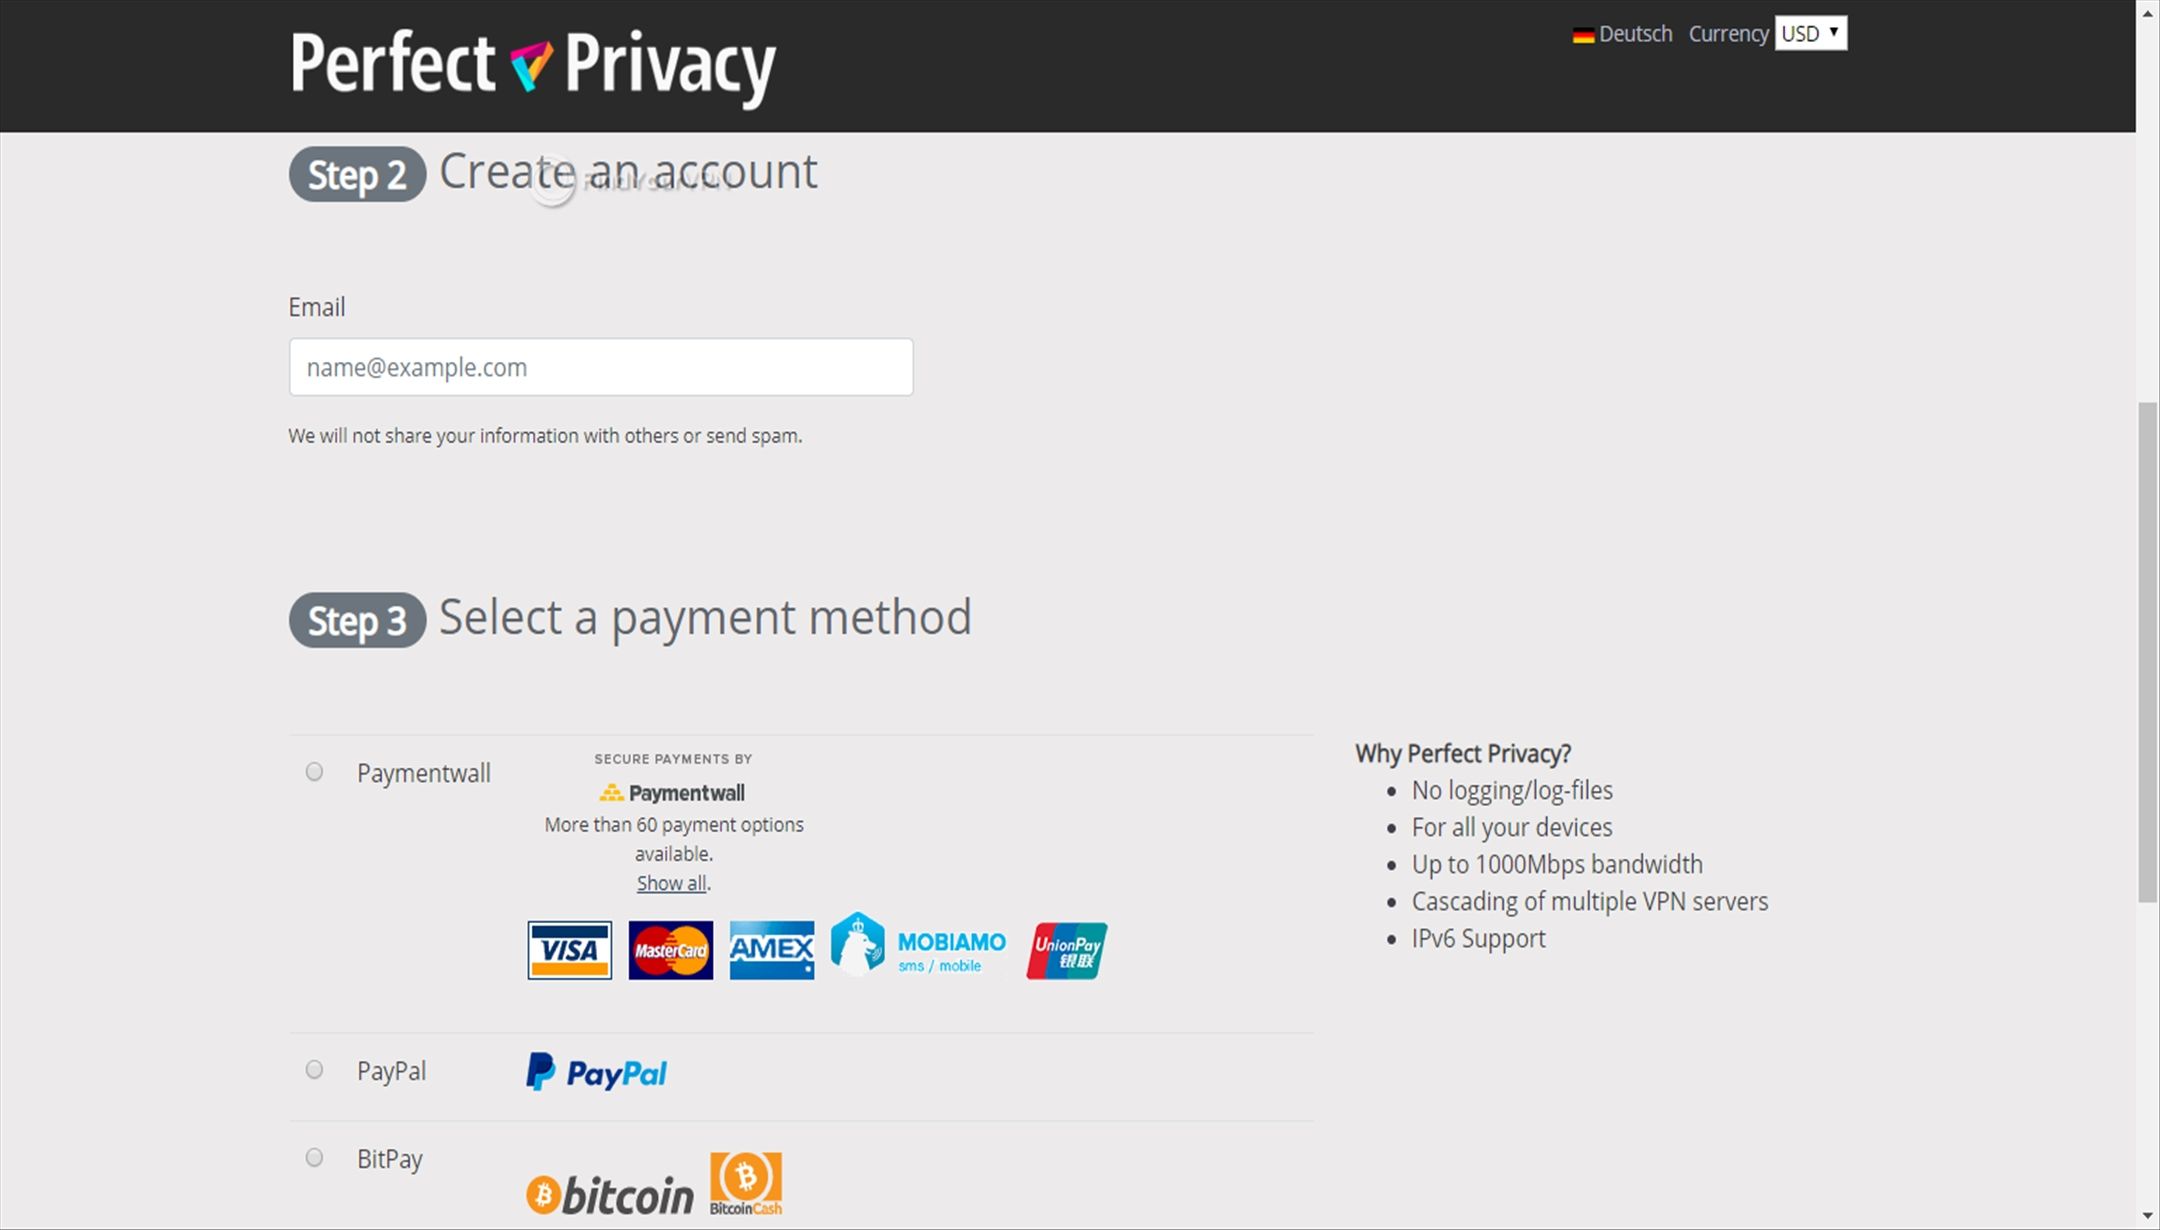 Email and payment type for Perfect Privacy VPN